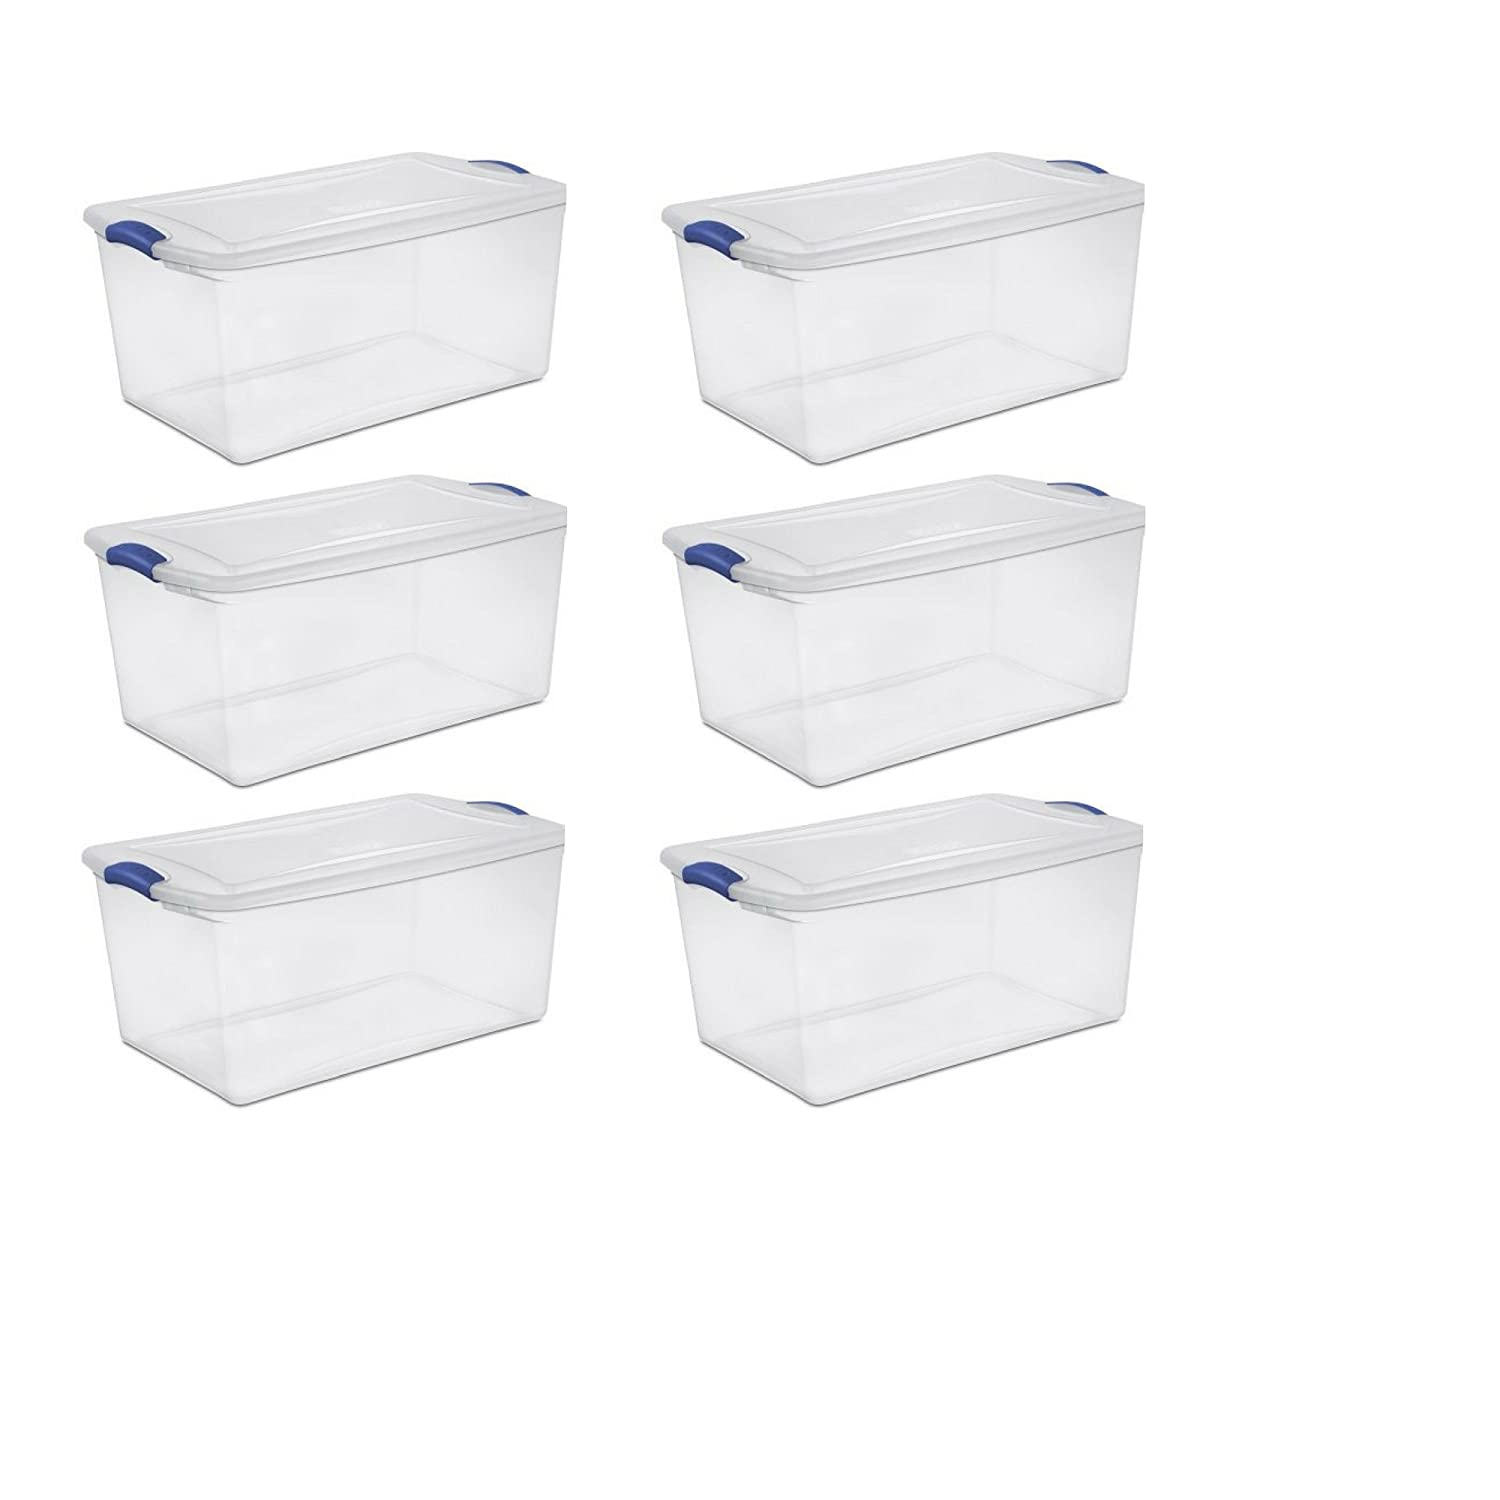 Sterilite 66 Qt./62 L Latch Box, Stadium Blue - 6 Pack